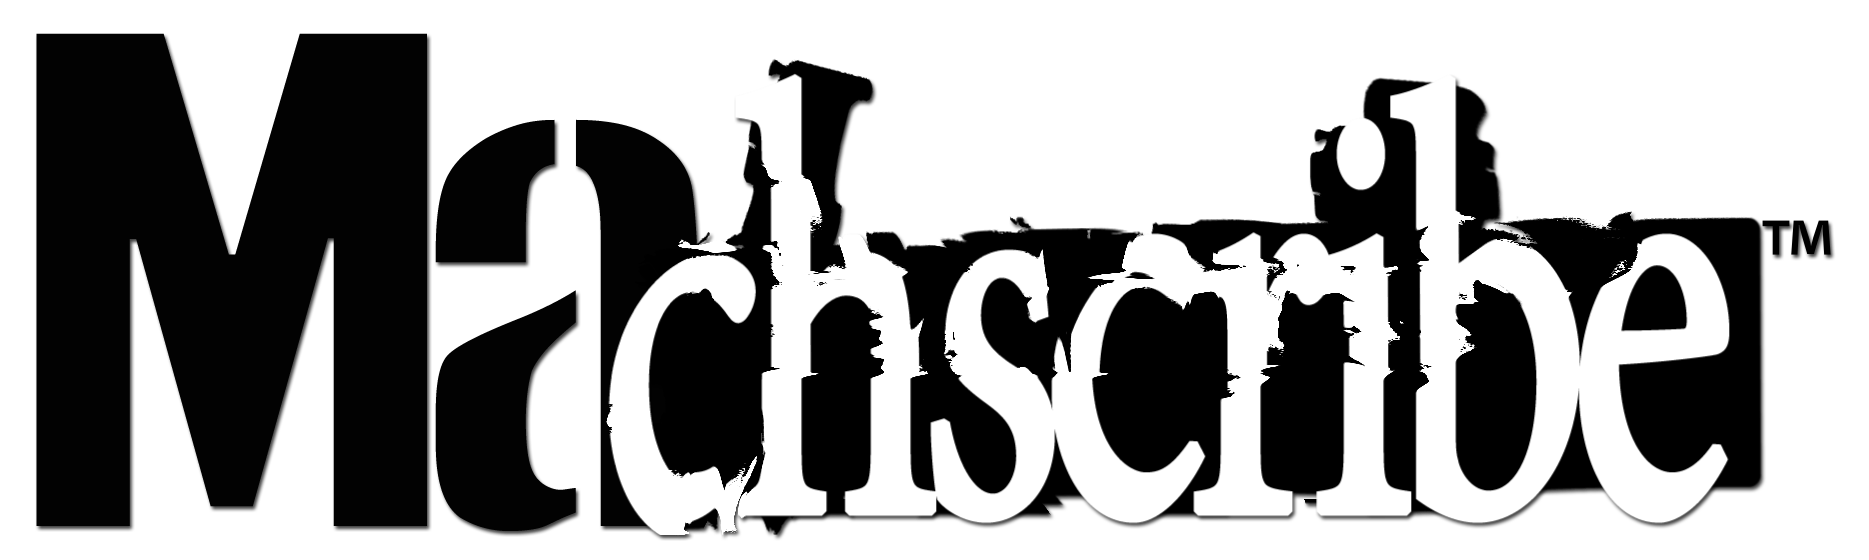 machscribe-logo